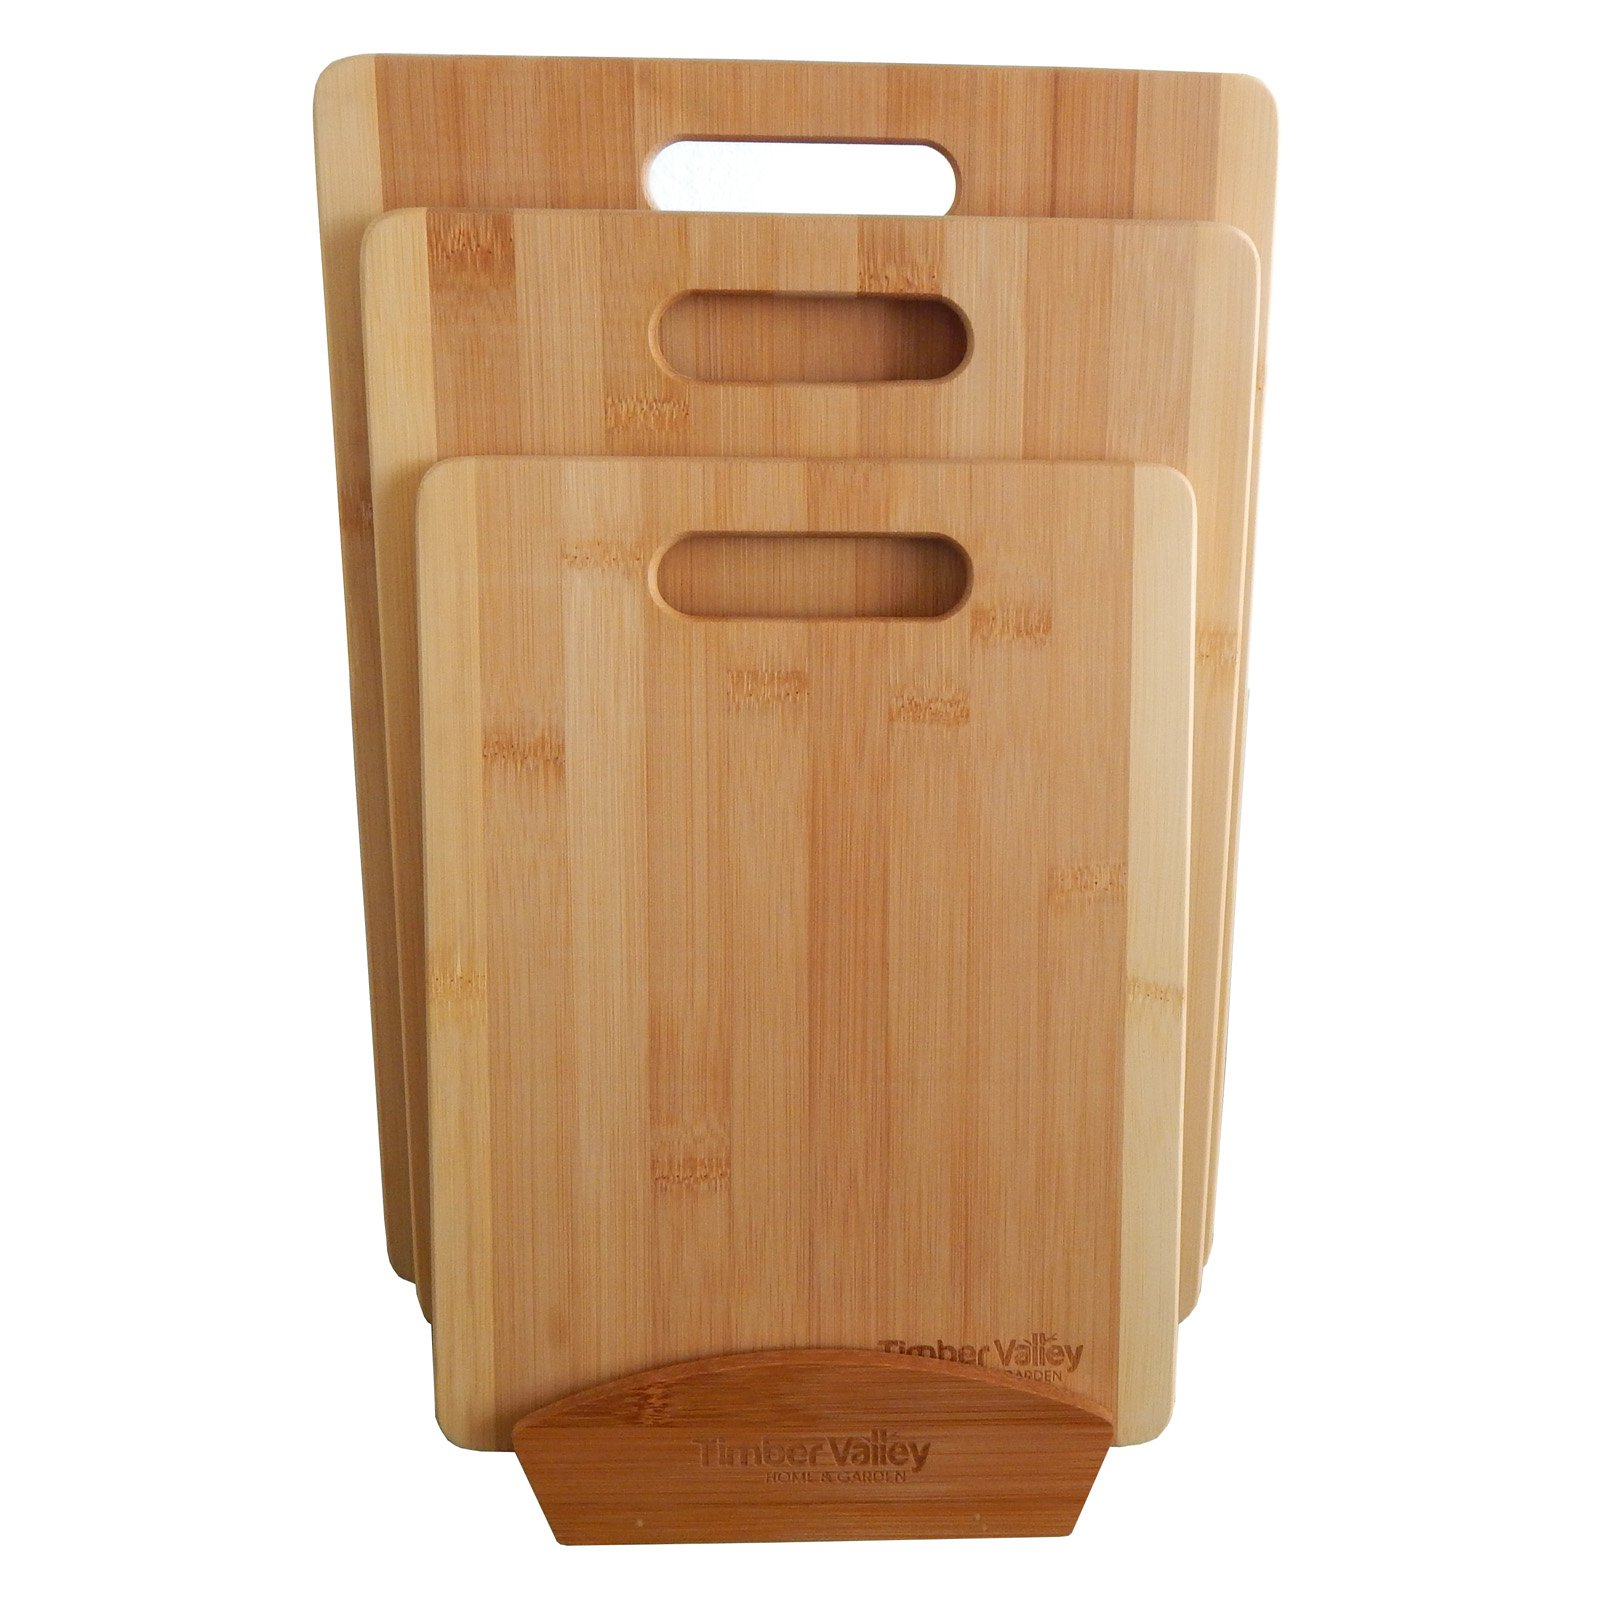 Timber Valley Bamboo 3 Piece Cutting Board Set With Stand By Mid